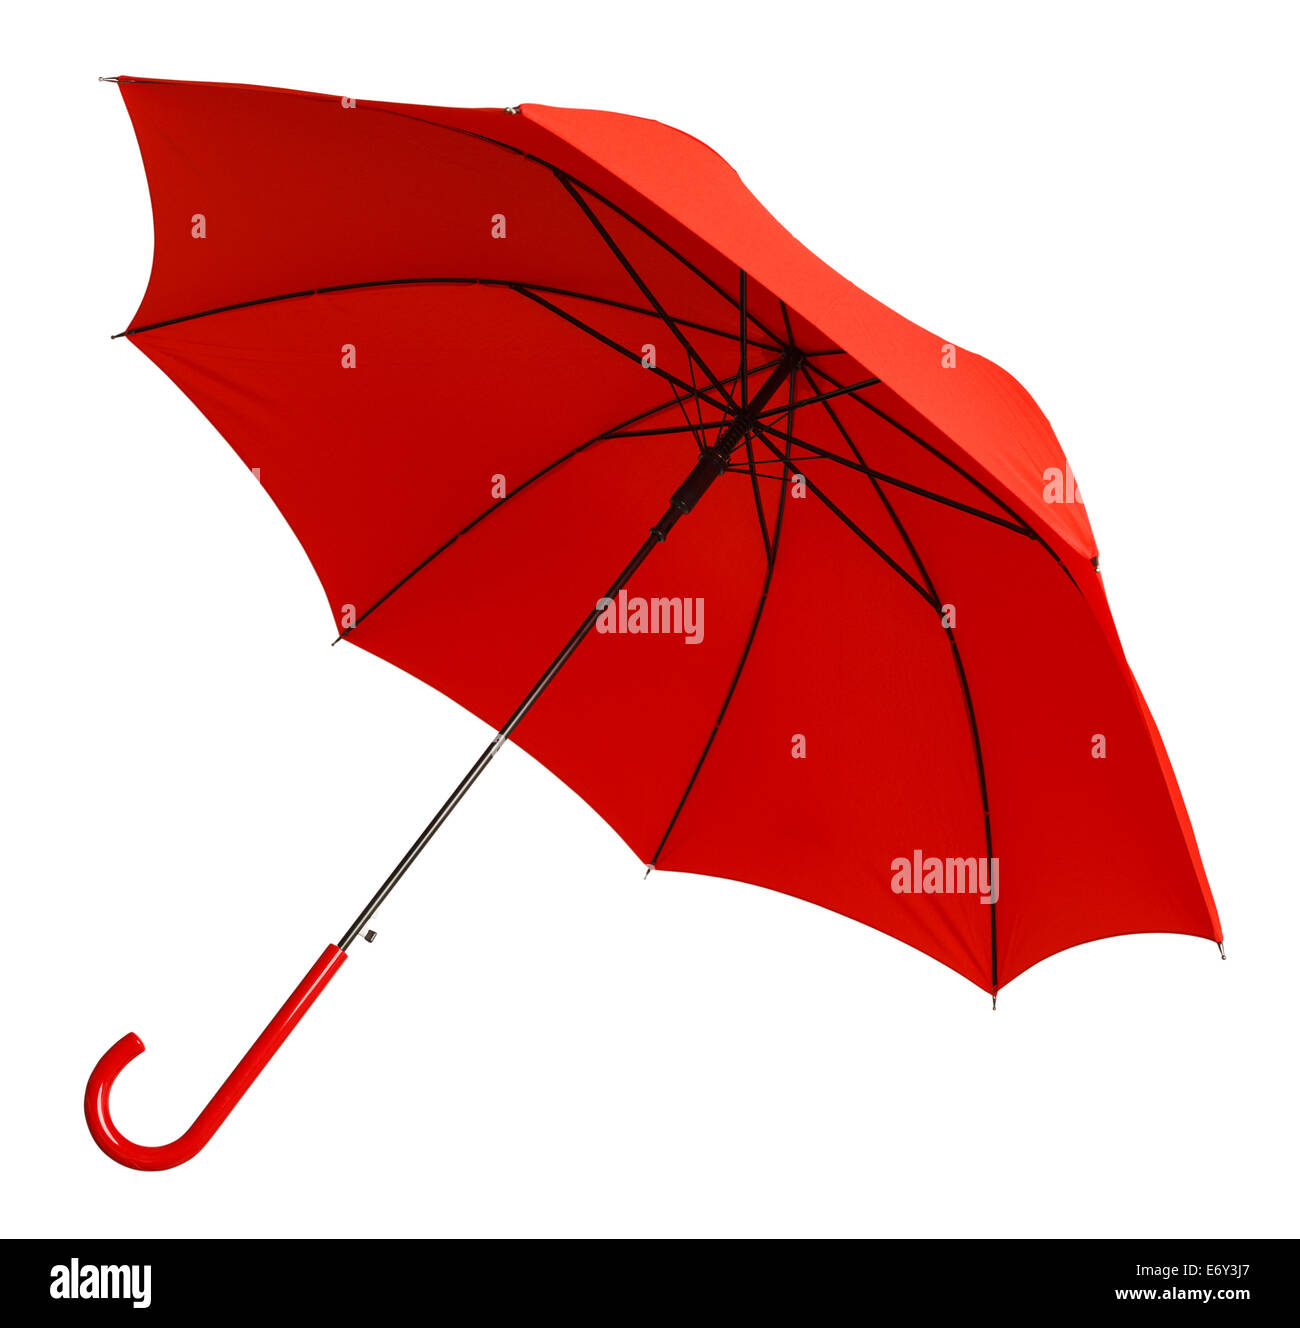 Bright Red Umbrella Tilted Isolated on White Background. - Stock Image